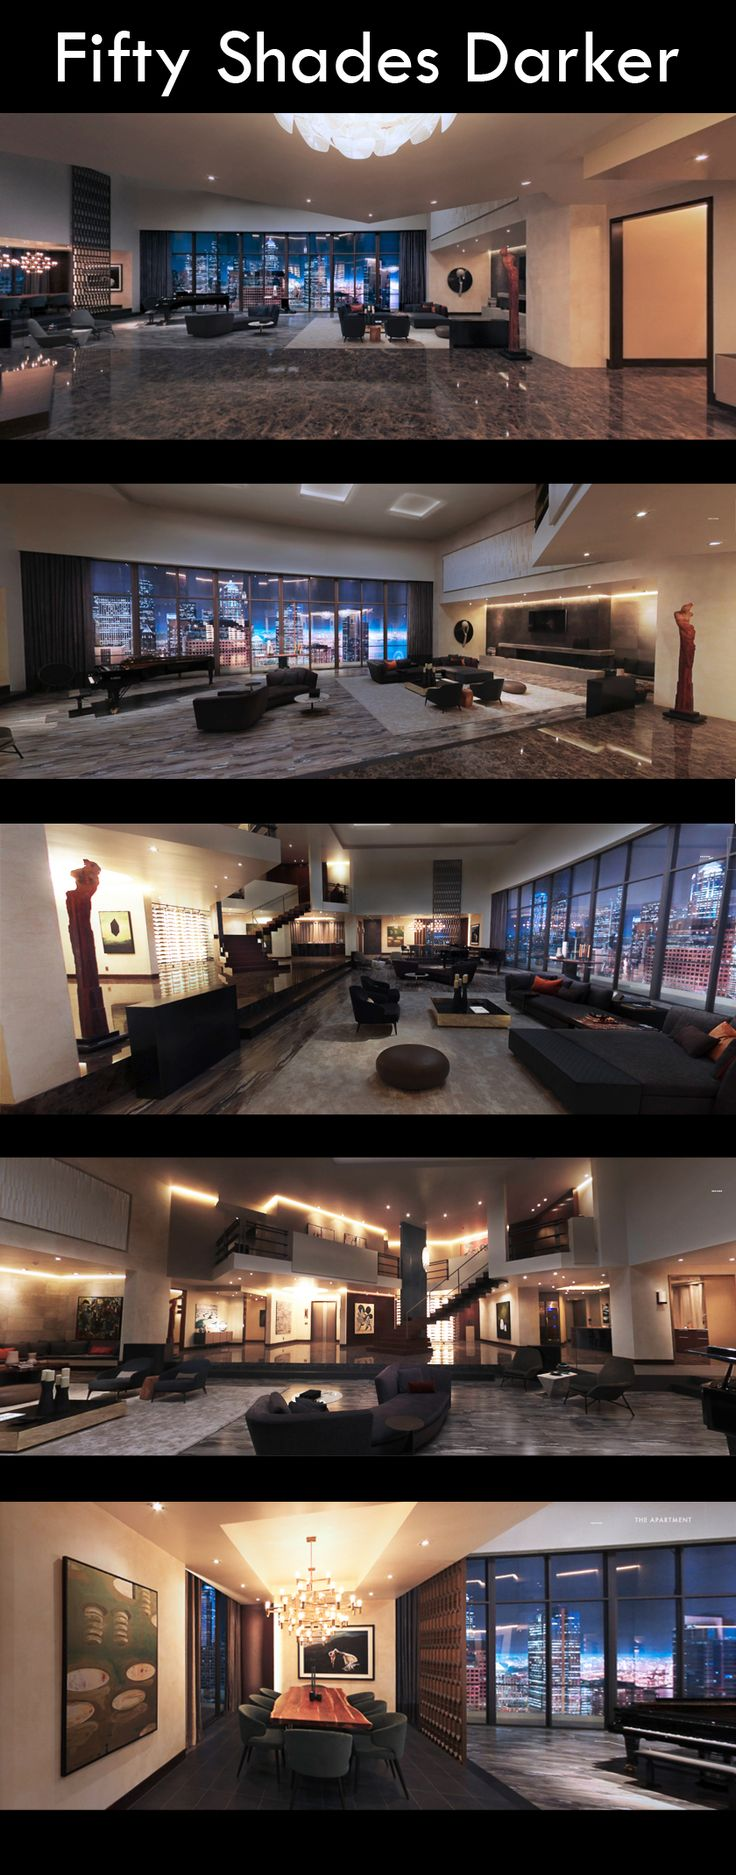 Christian Grey's penthouse apartment in Fifty Shades Darker (2017).